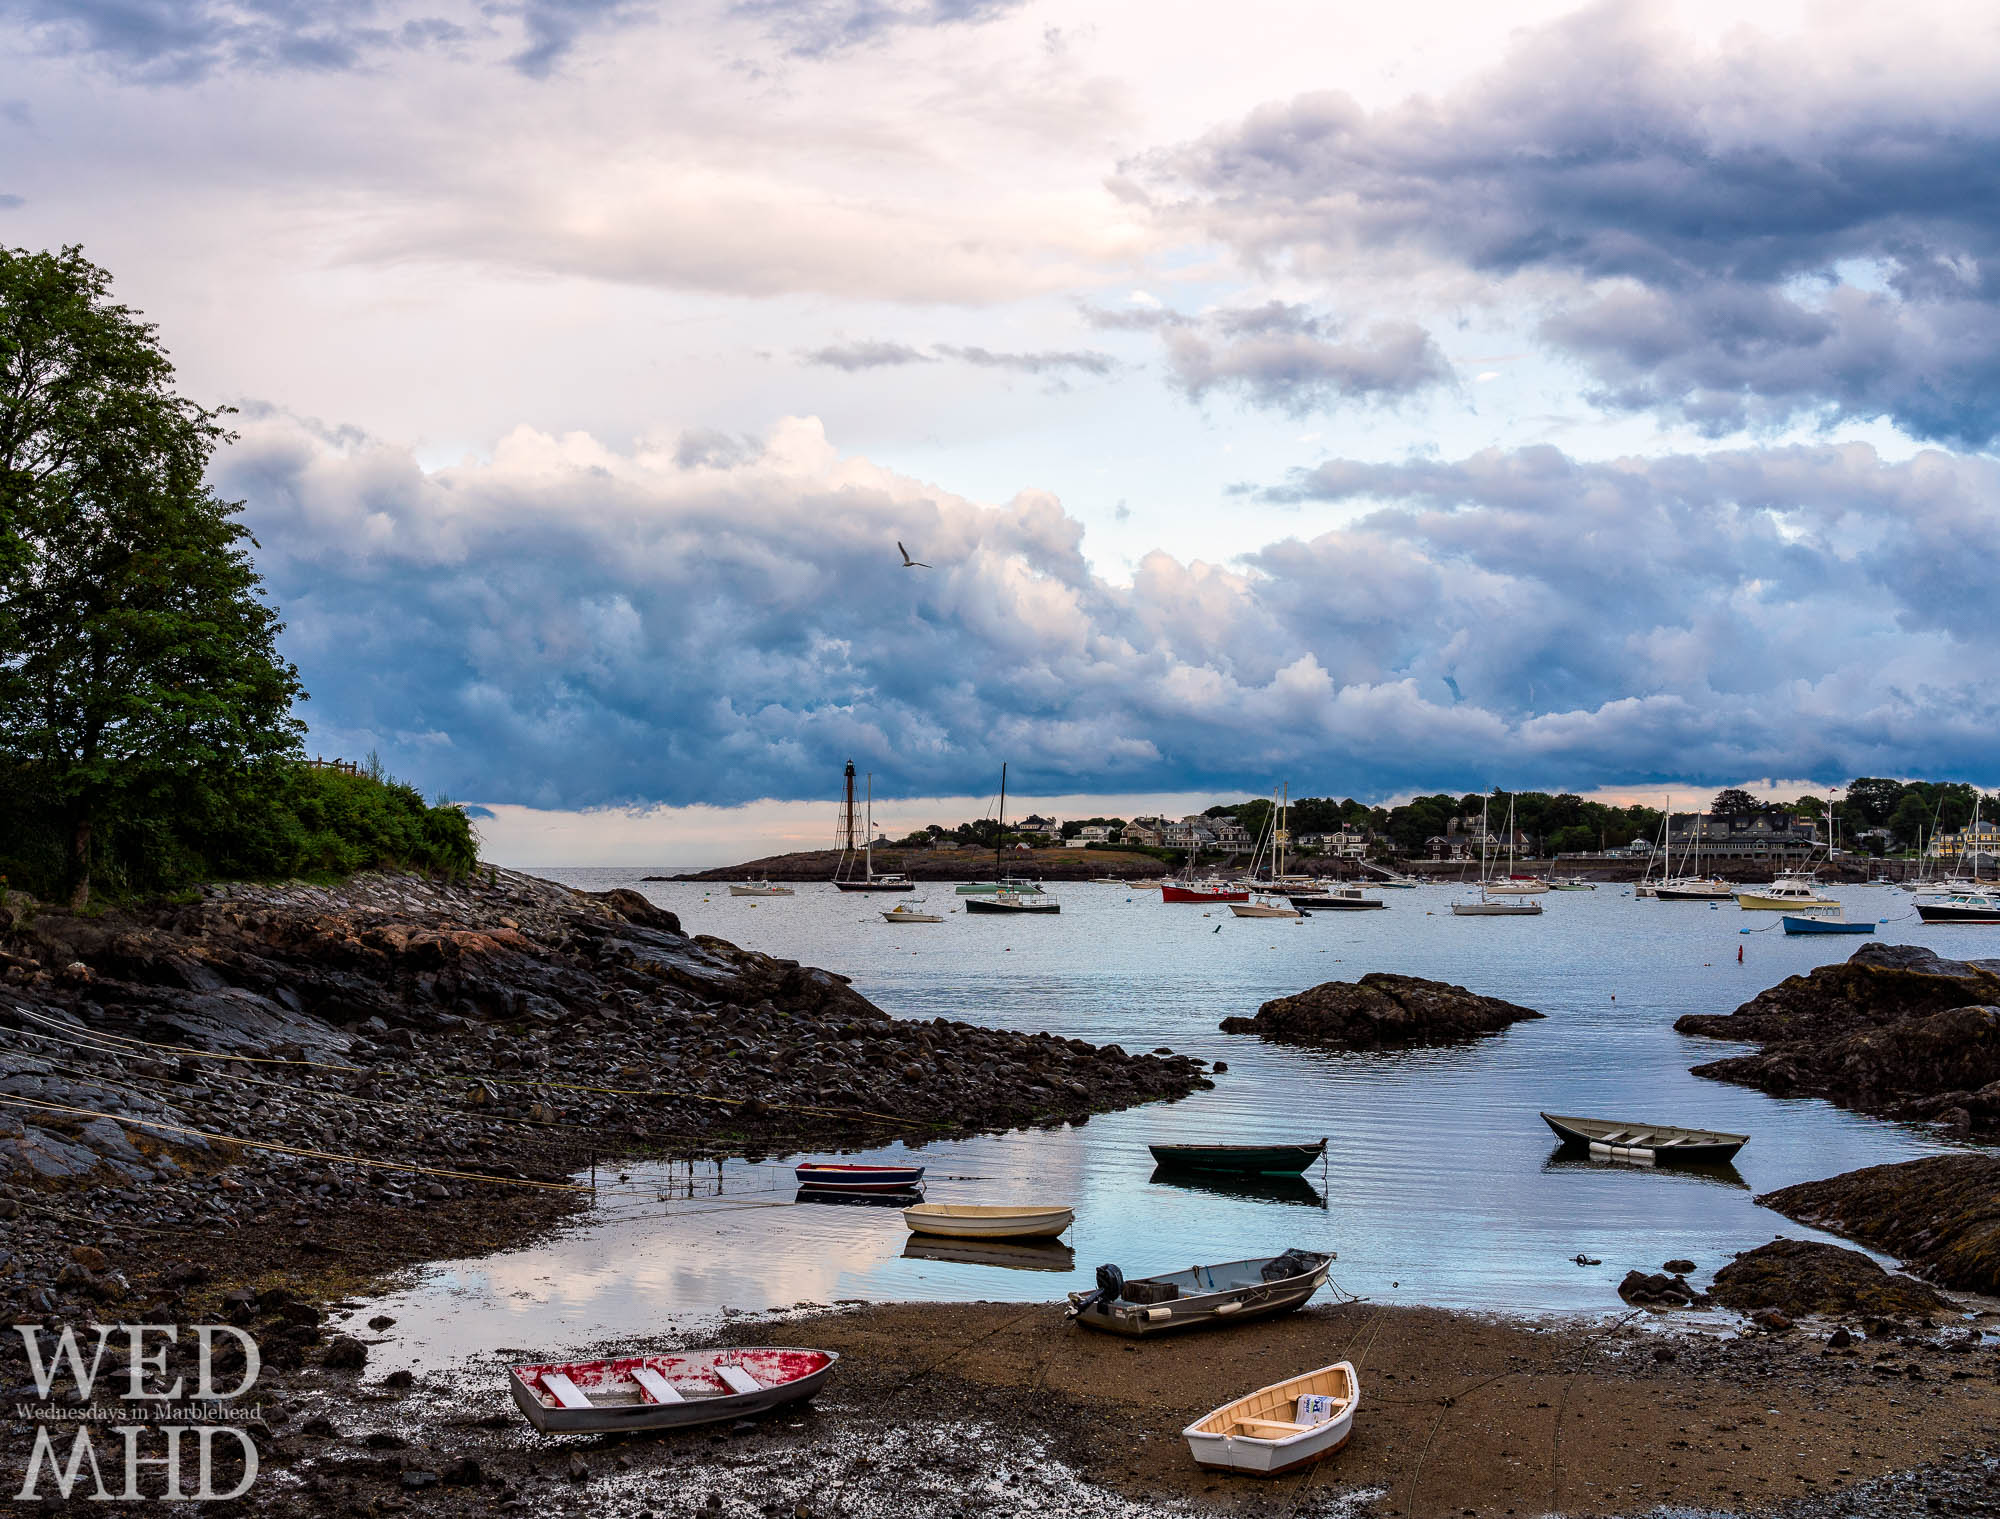 A seagull flies in front of clouds from a passing storm as low tide beaches a few boats at Fort Beach in Marblehead